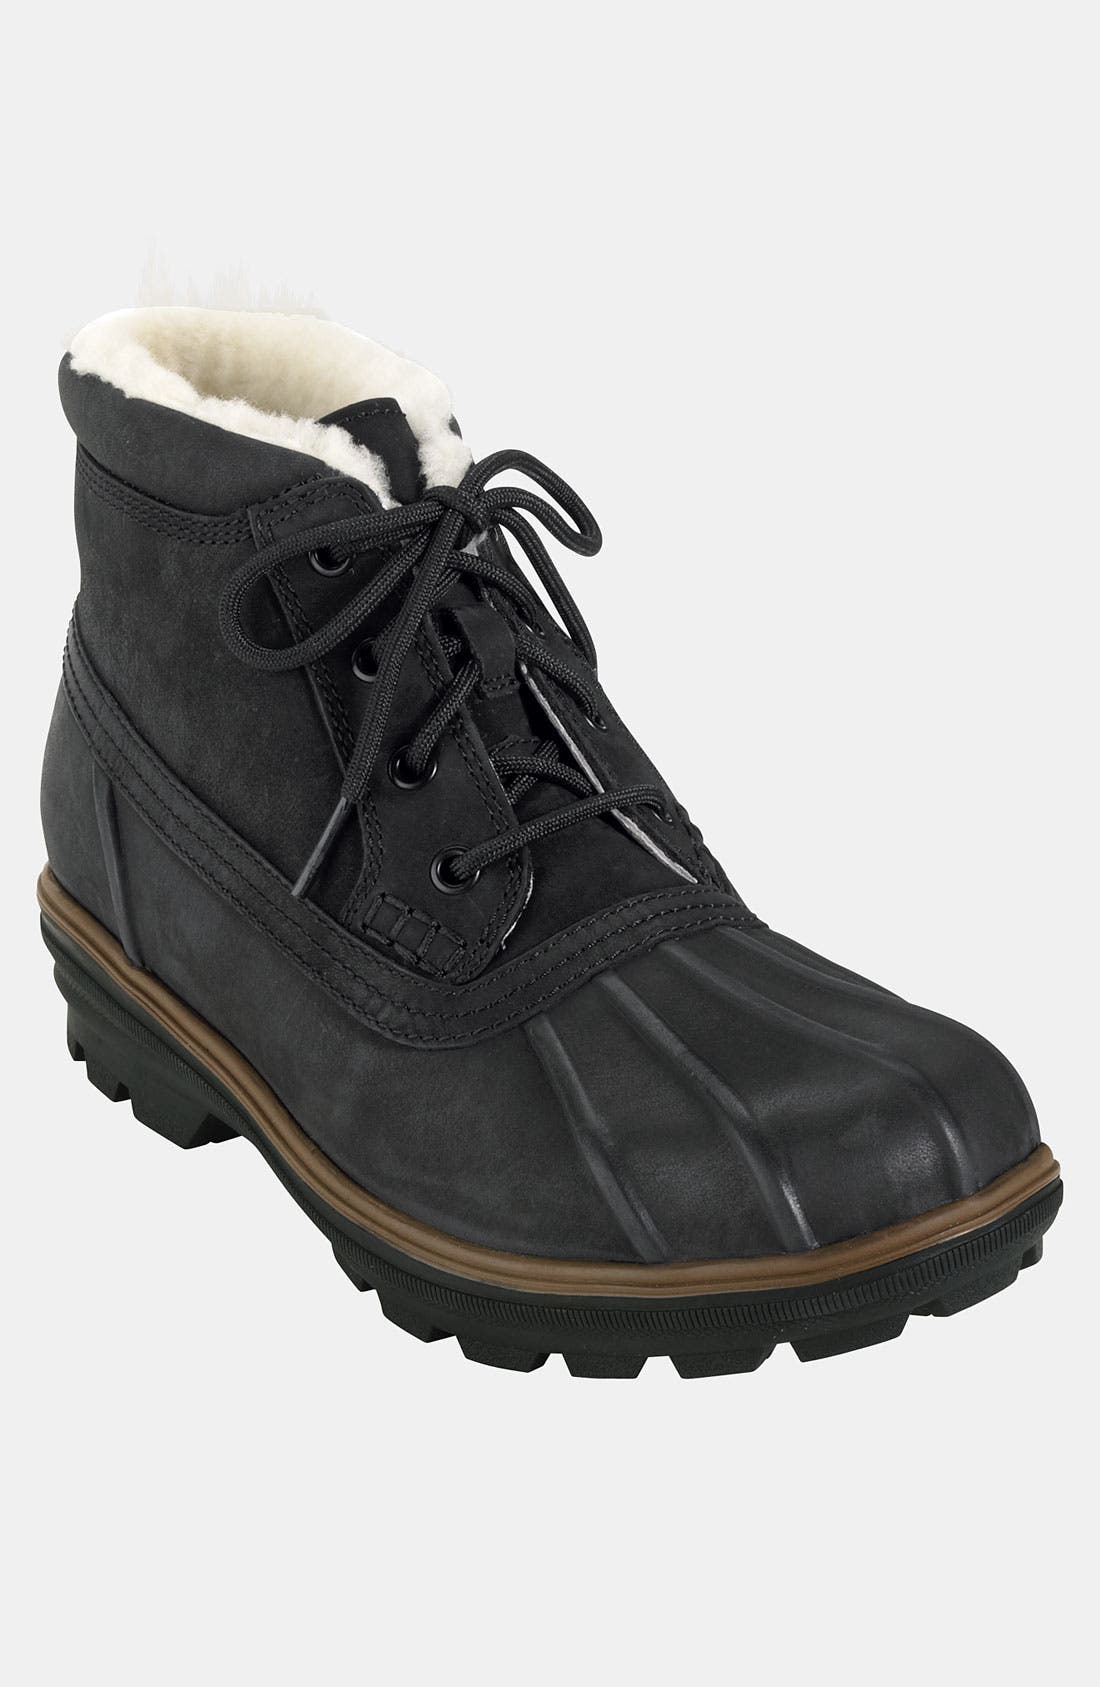 Alternate Image 1 Selected - Cole Haan 'Air Scout' Snow Boot